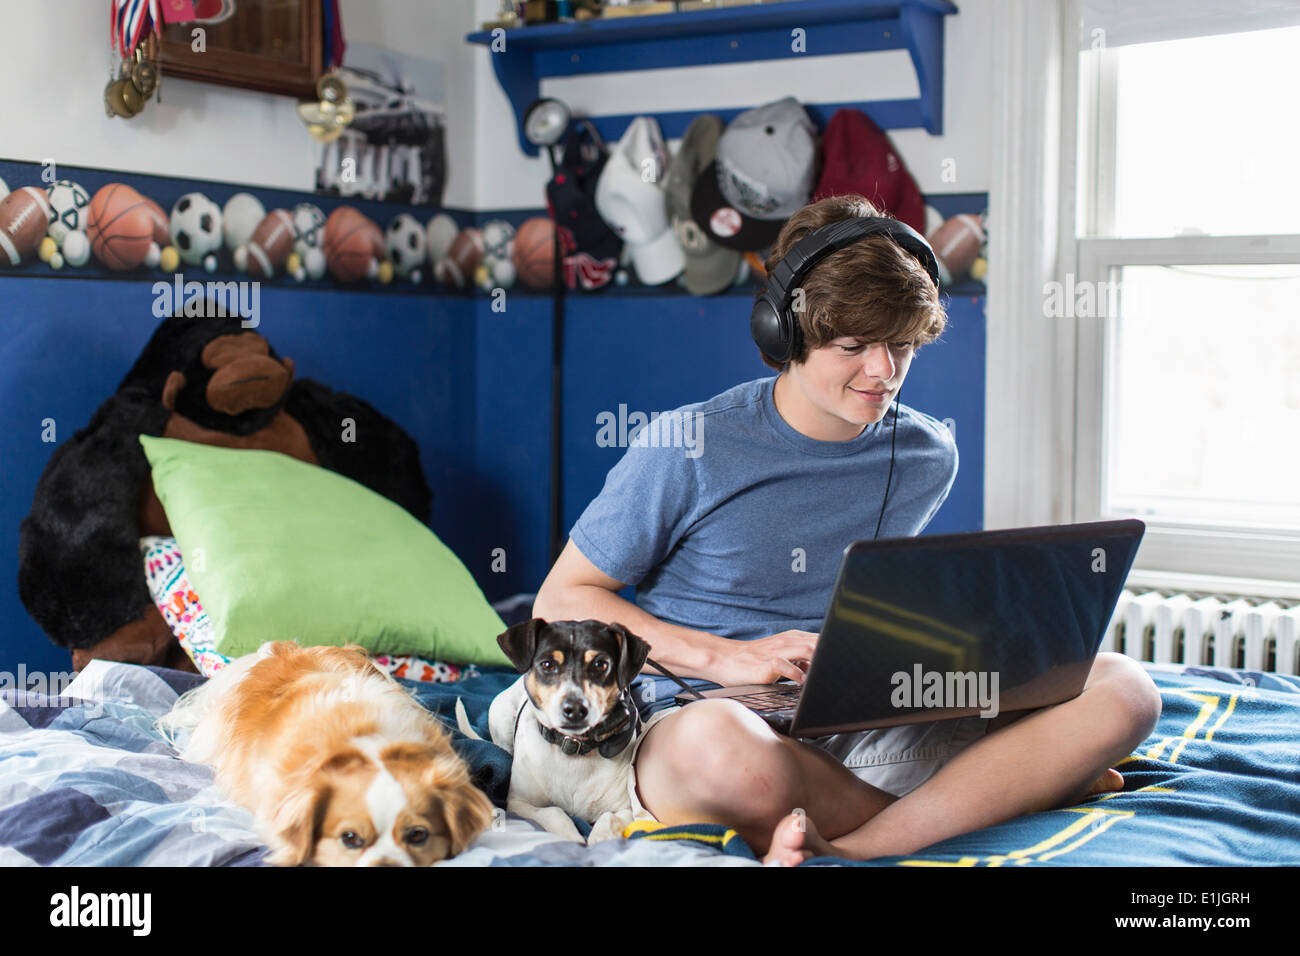 Teenage boy sitting on bed using laptop computer, with dogs - Stock Image